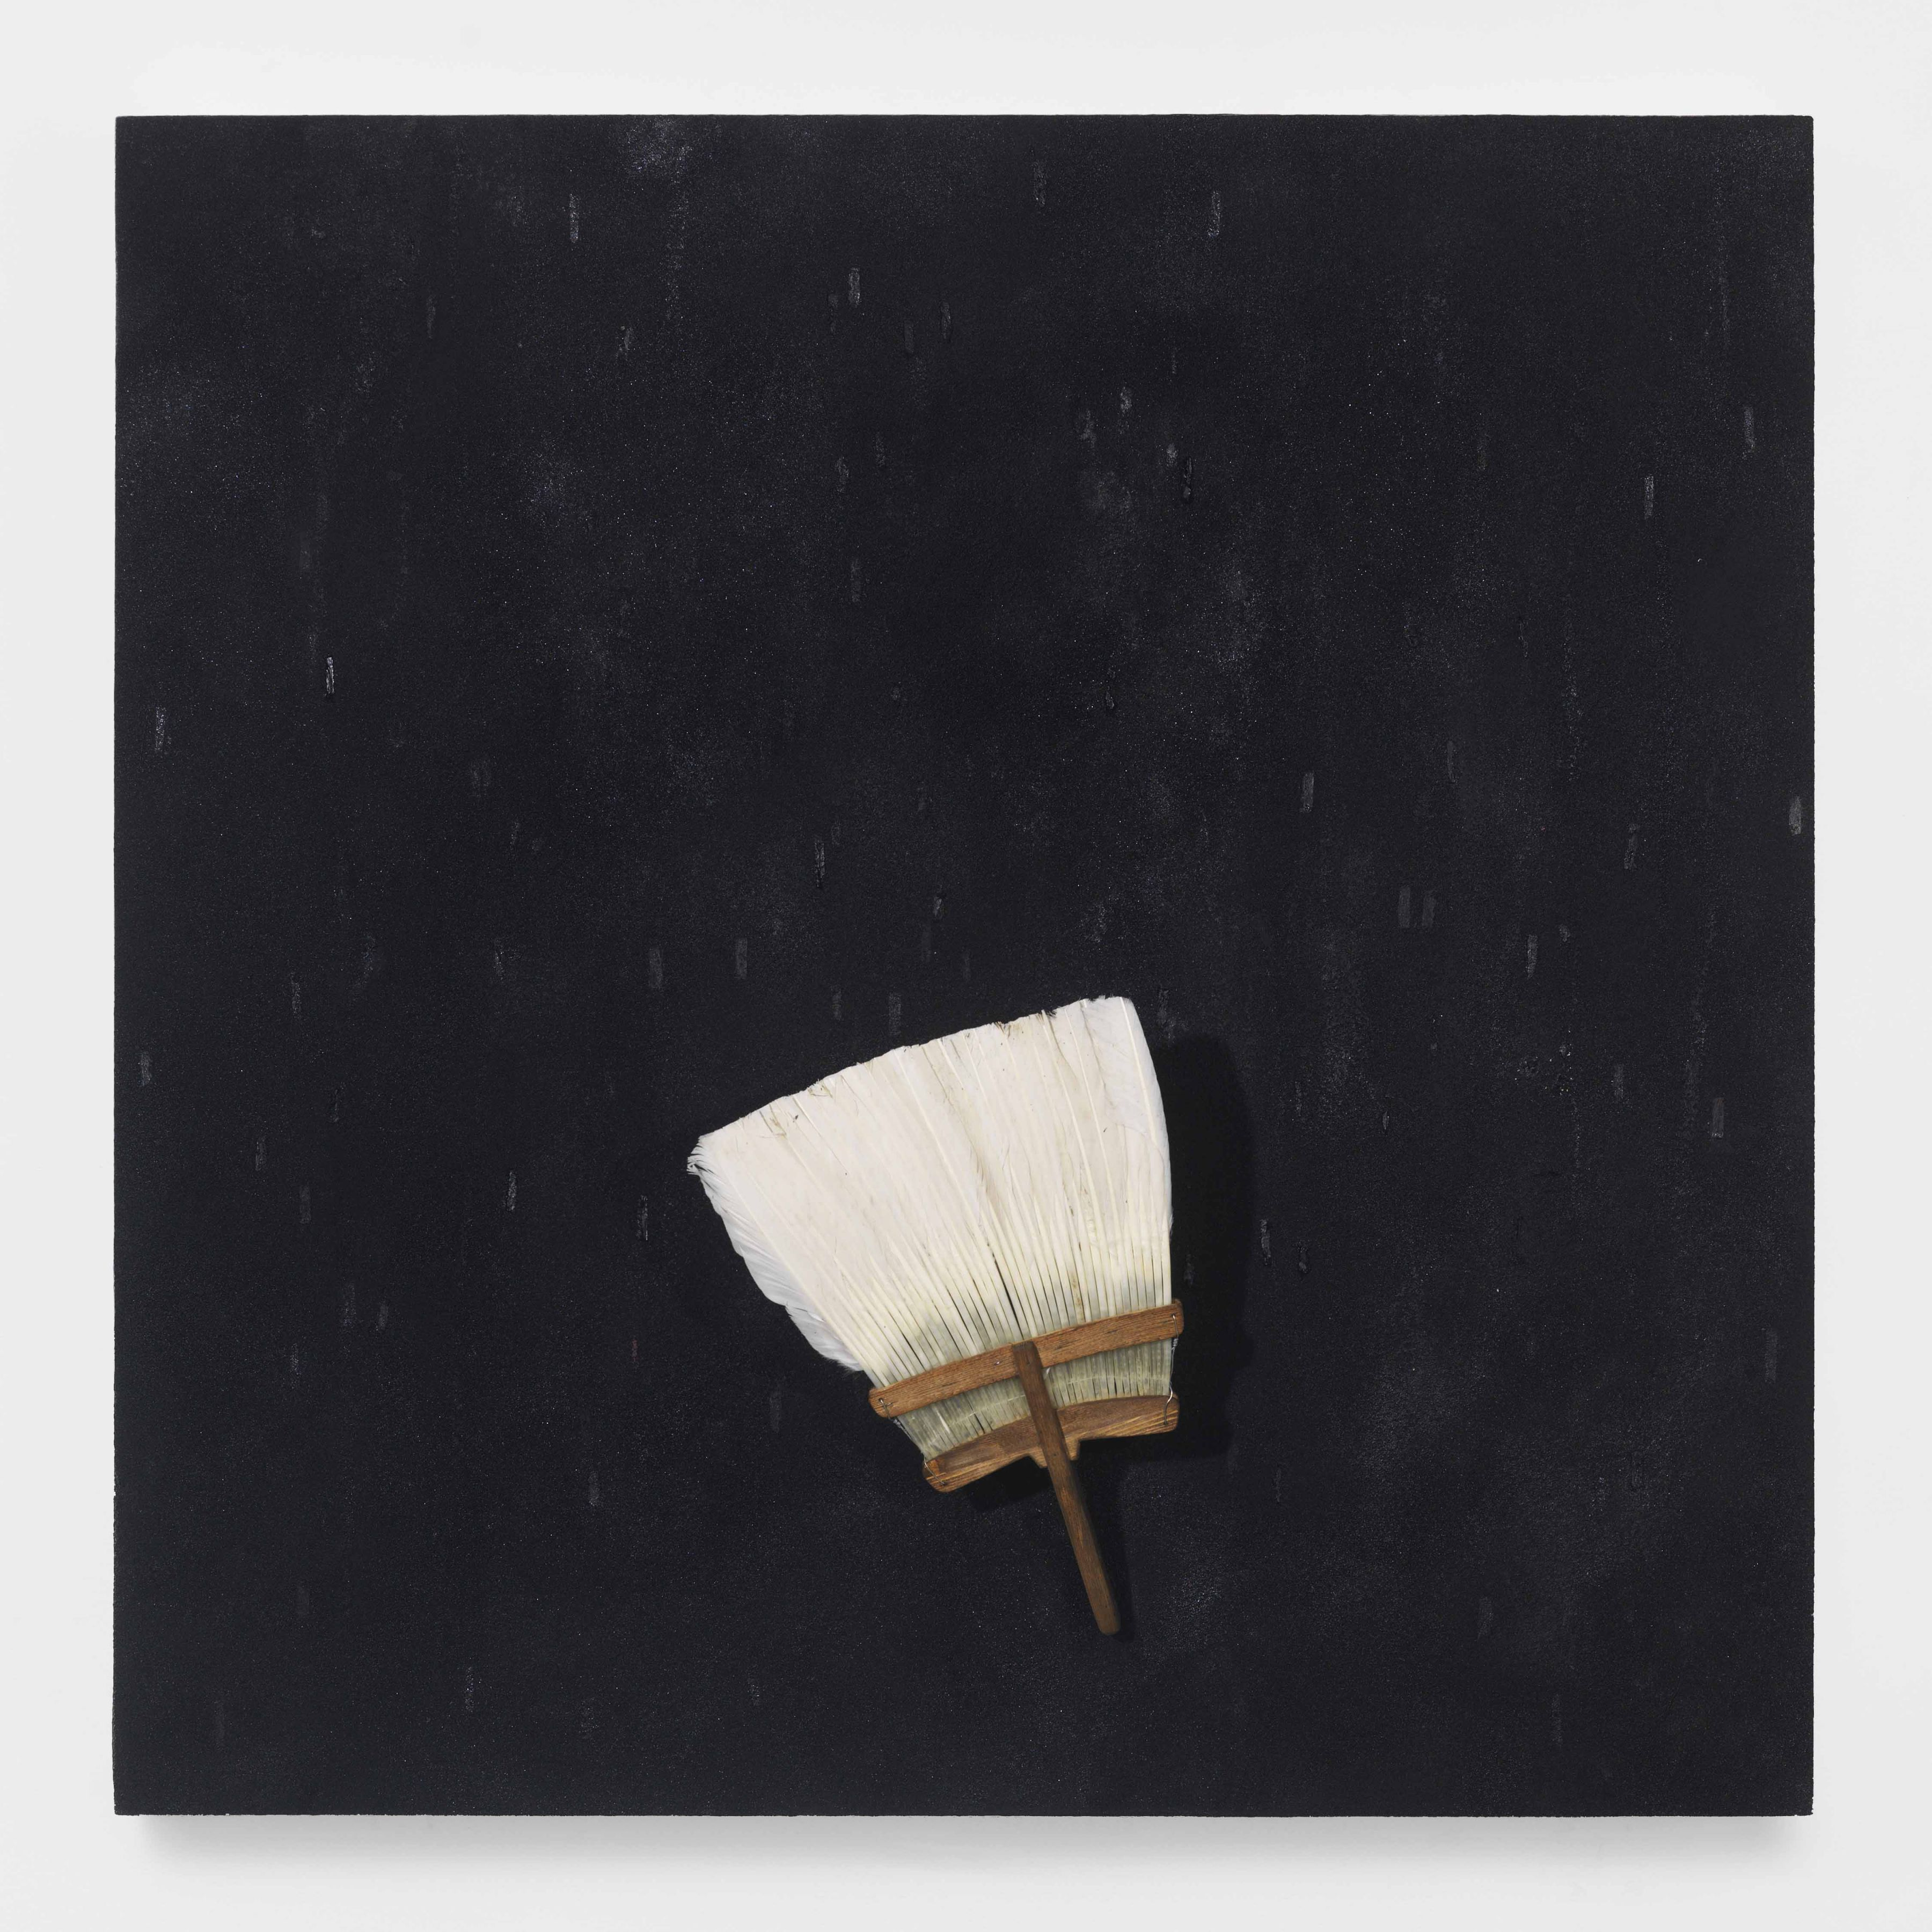 broom painting by Pier Paolo Calzolari for sale in a Chelsea New York gallery